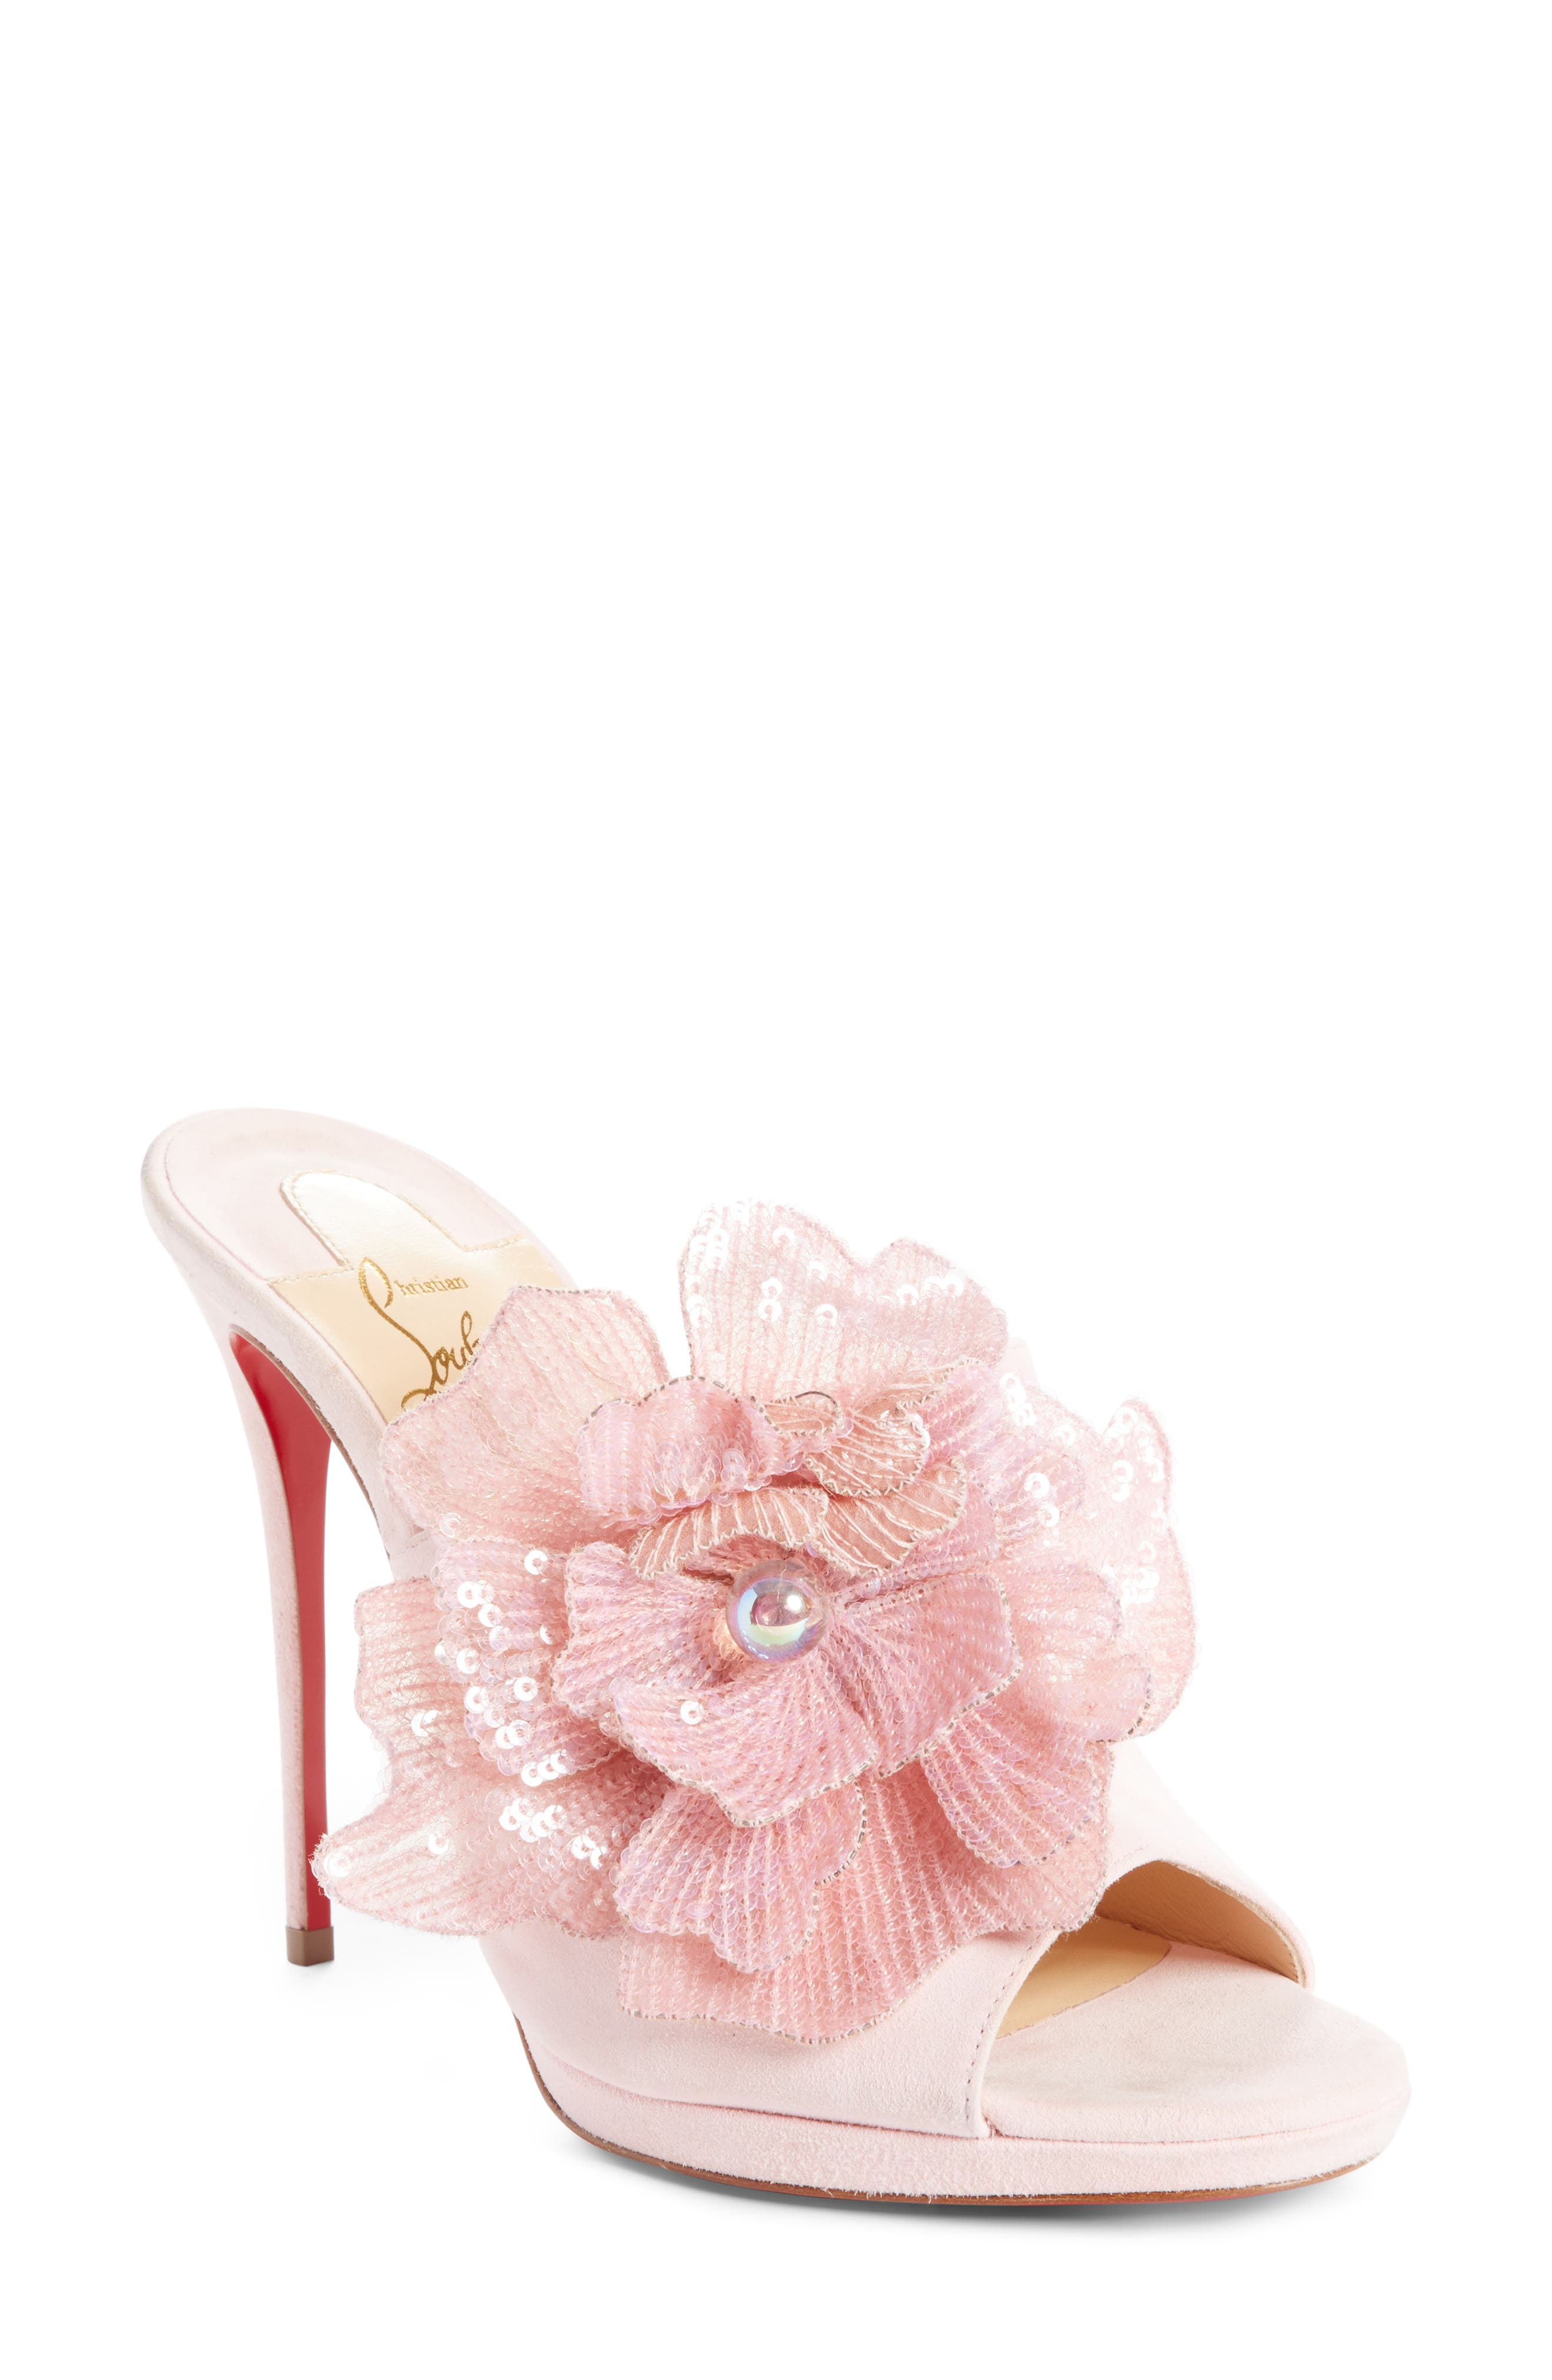 Alternate Image 1 Selected - Christian Louboutin Submuline Sequin Flower Mule (Women)